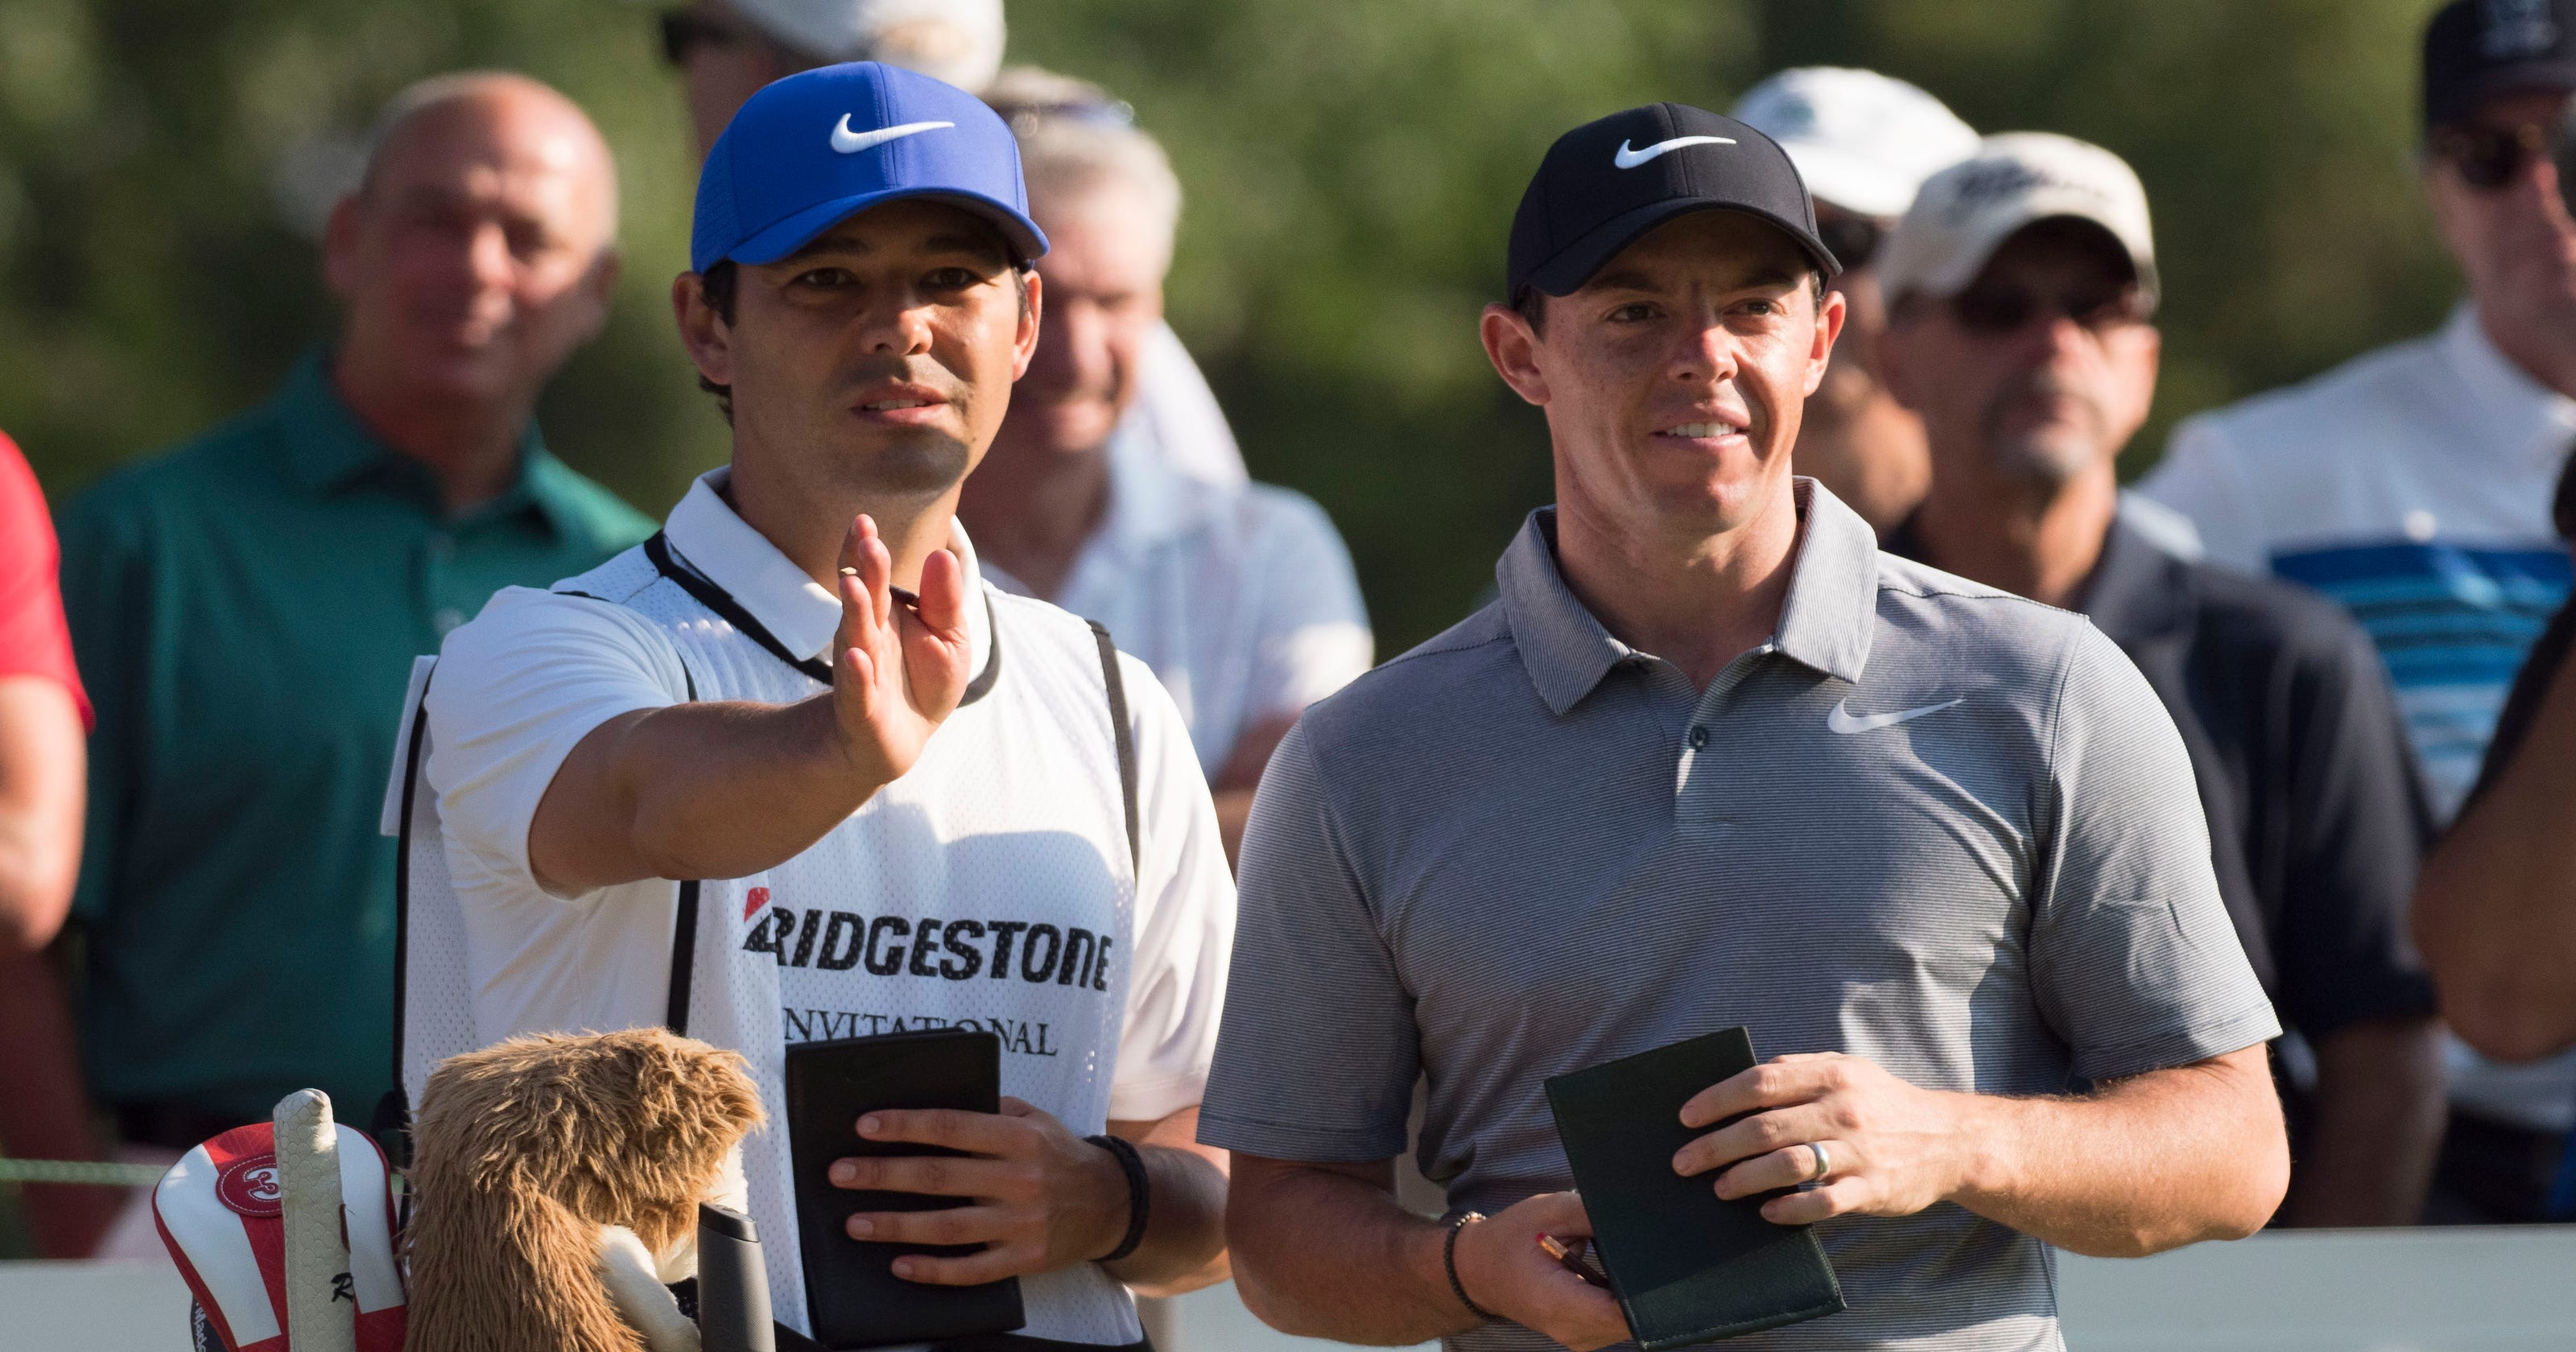 Rory McIlroy shoots 67 in Bridgestone after caddie change 743231fc85a